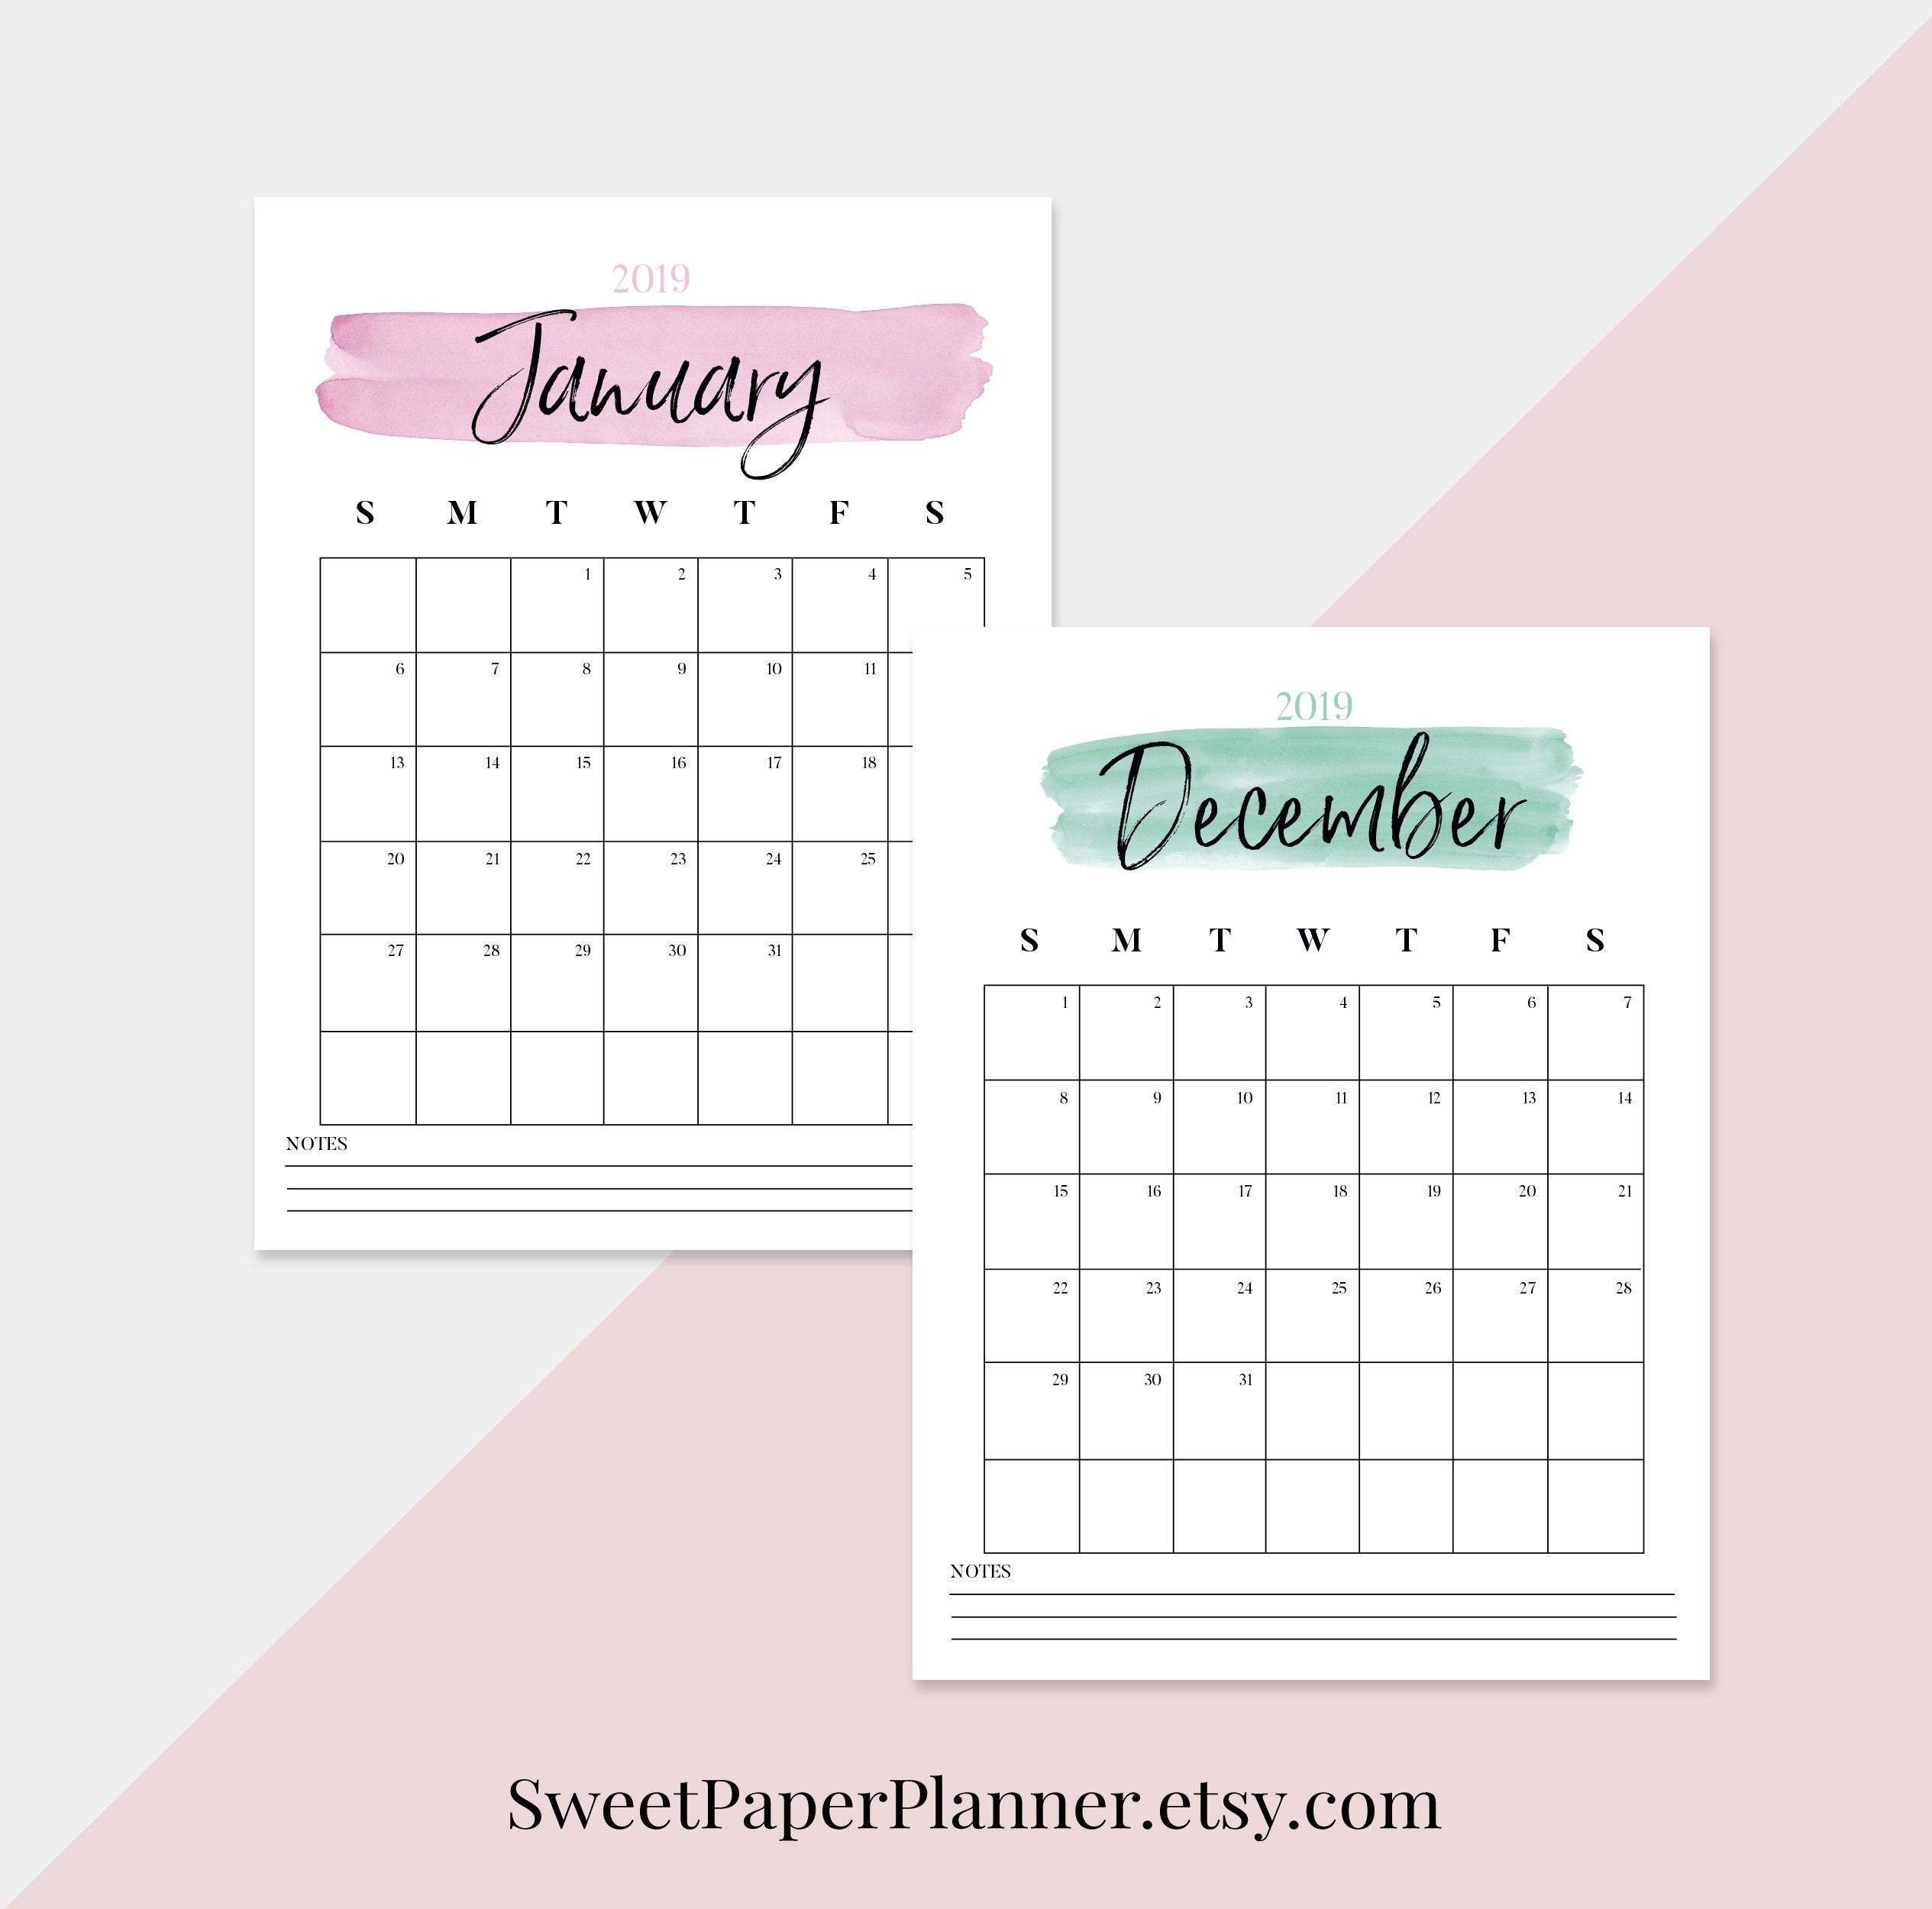 2020 Watercolor Calendar And To Do List | Printable  File:///u:/depo Perpetual Calendar.pdf